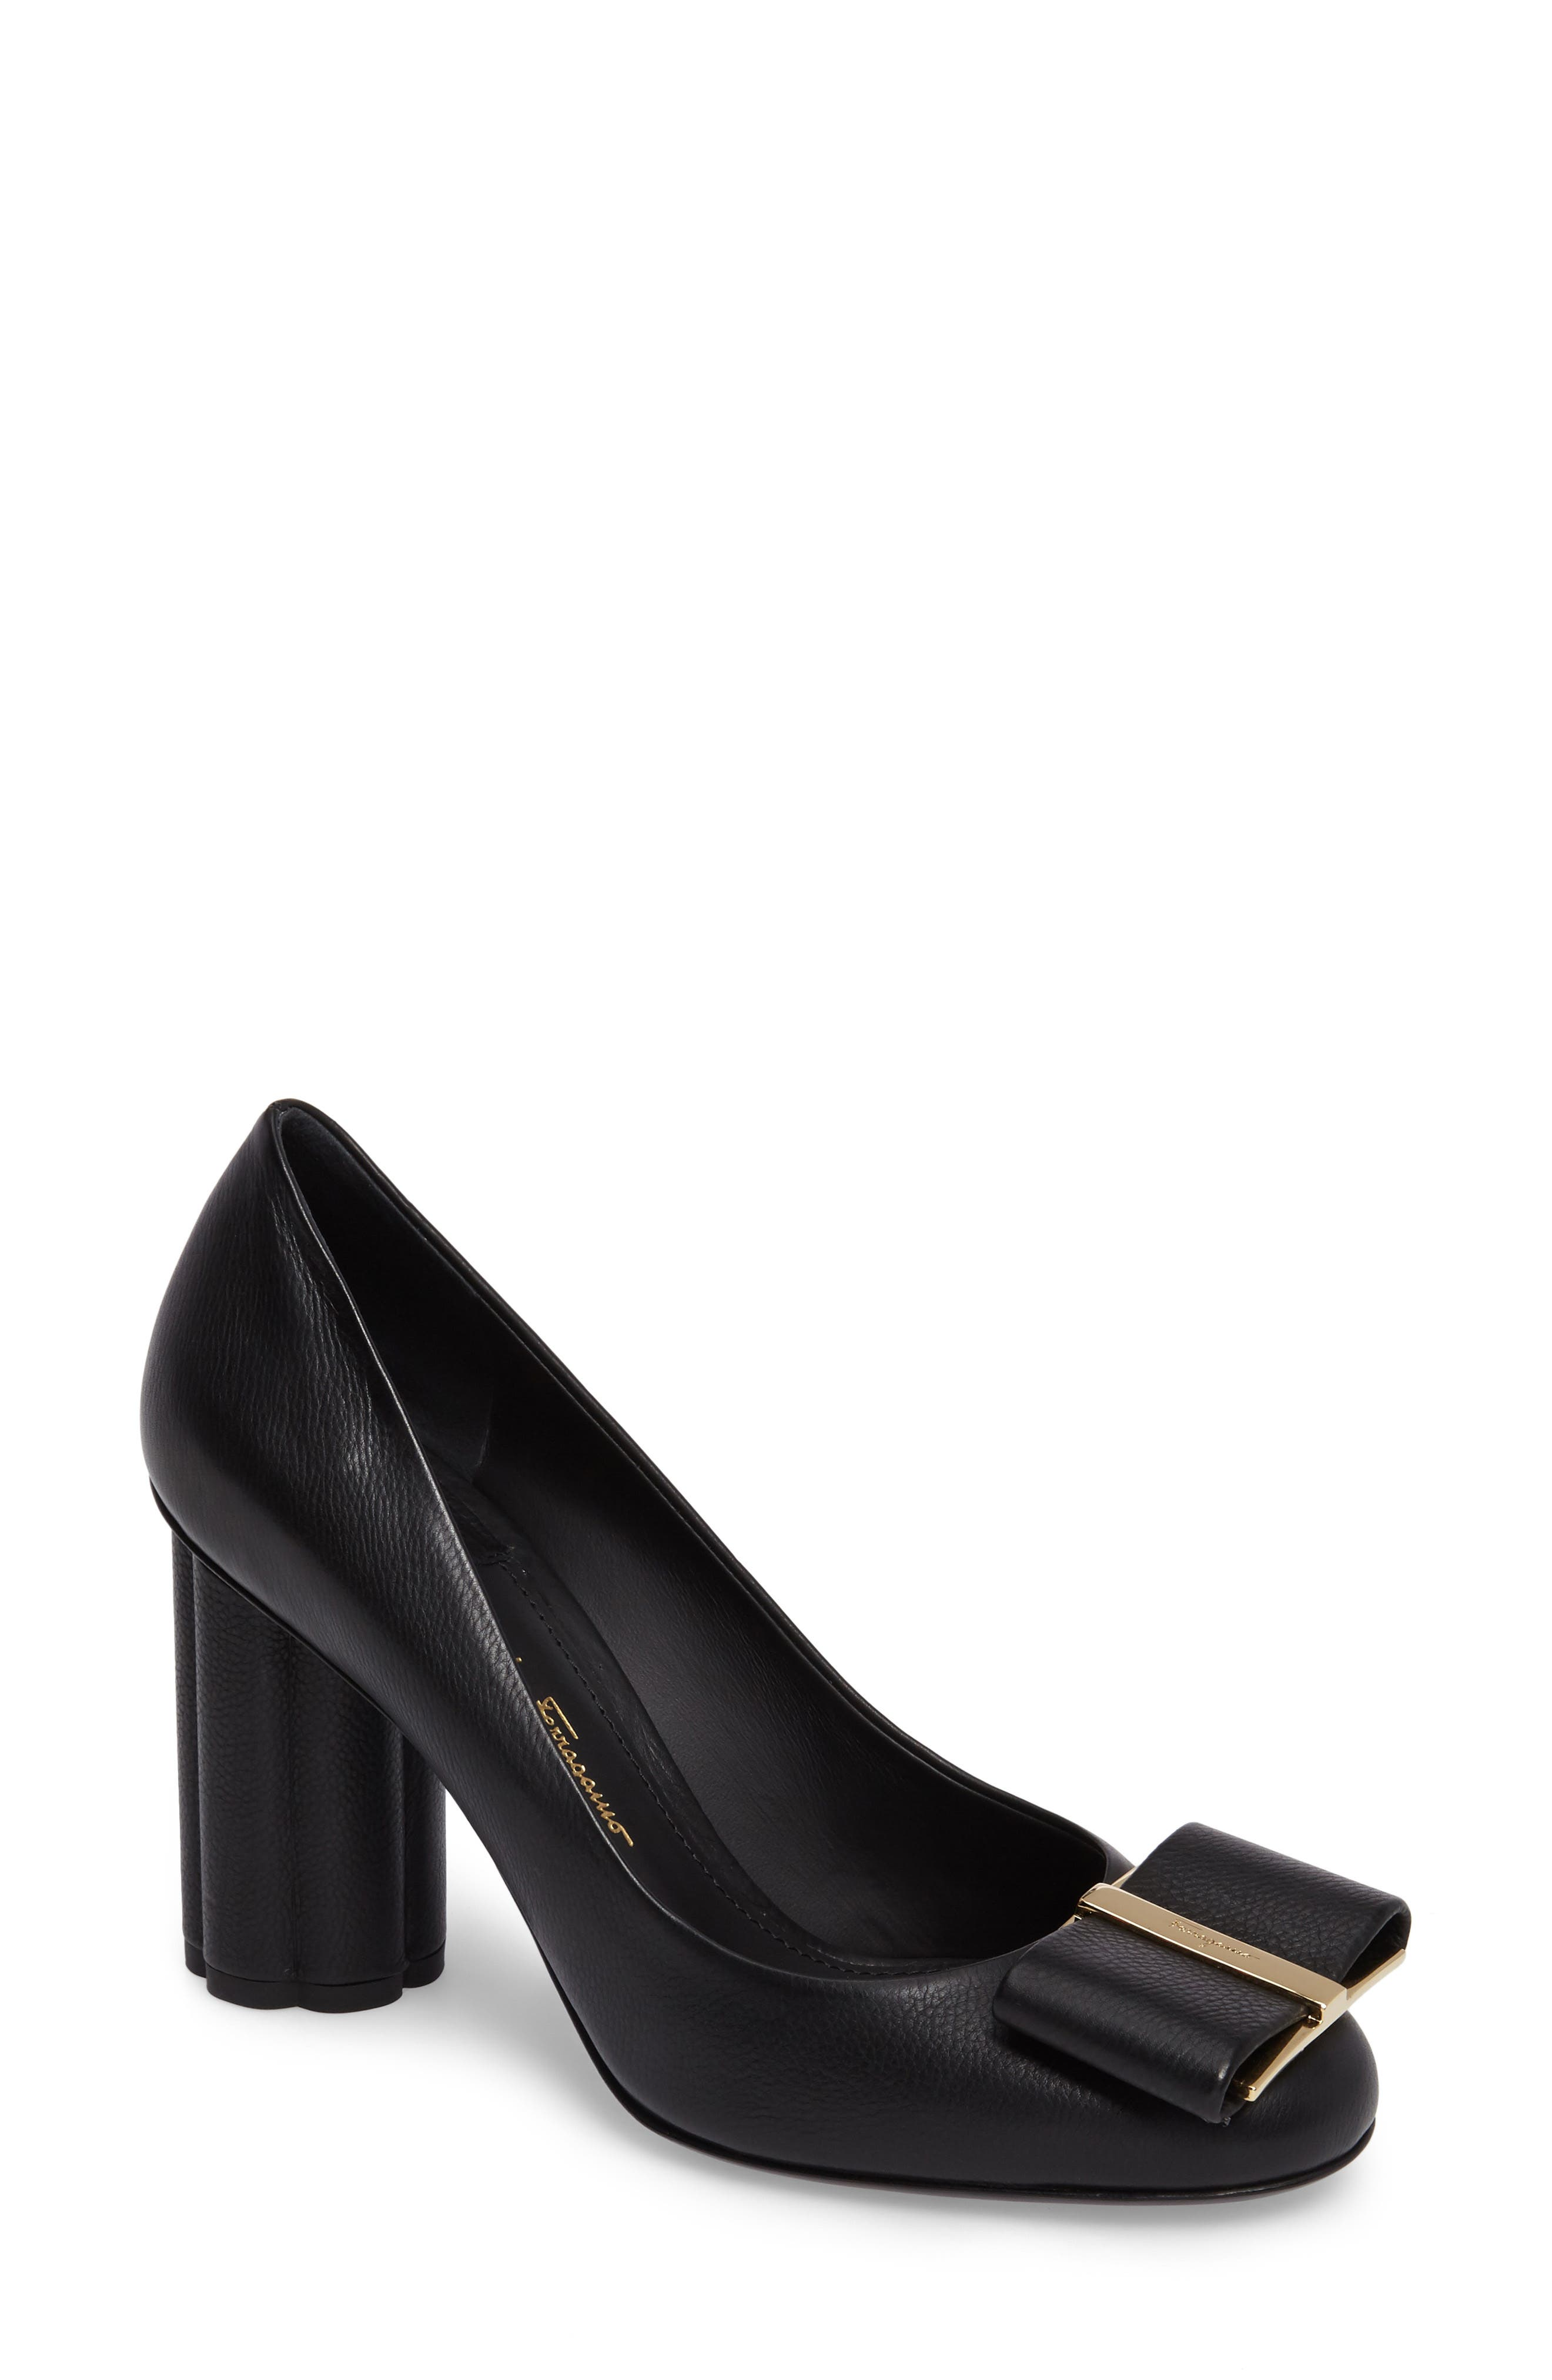 Salvatore Ferragamo Capua Pump (Women)